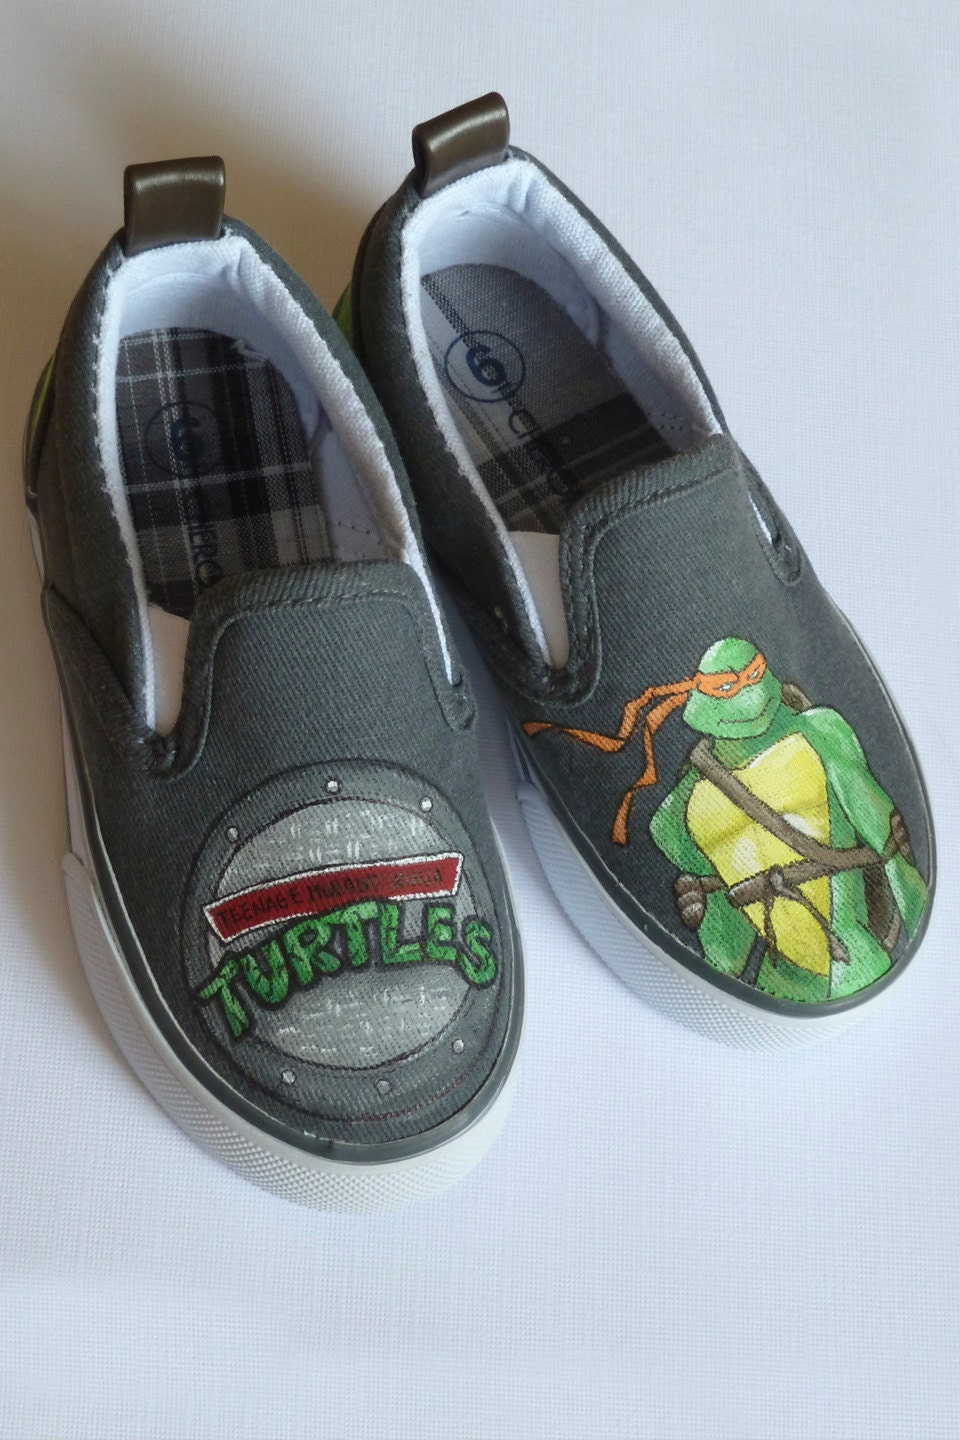 mutant turtles painted shoes by thebethslade